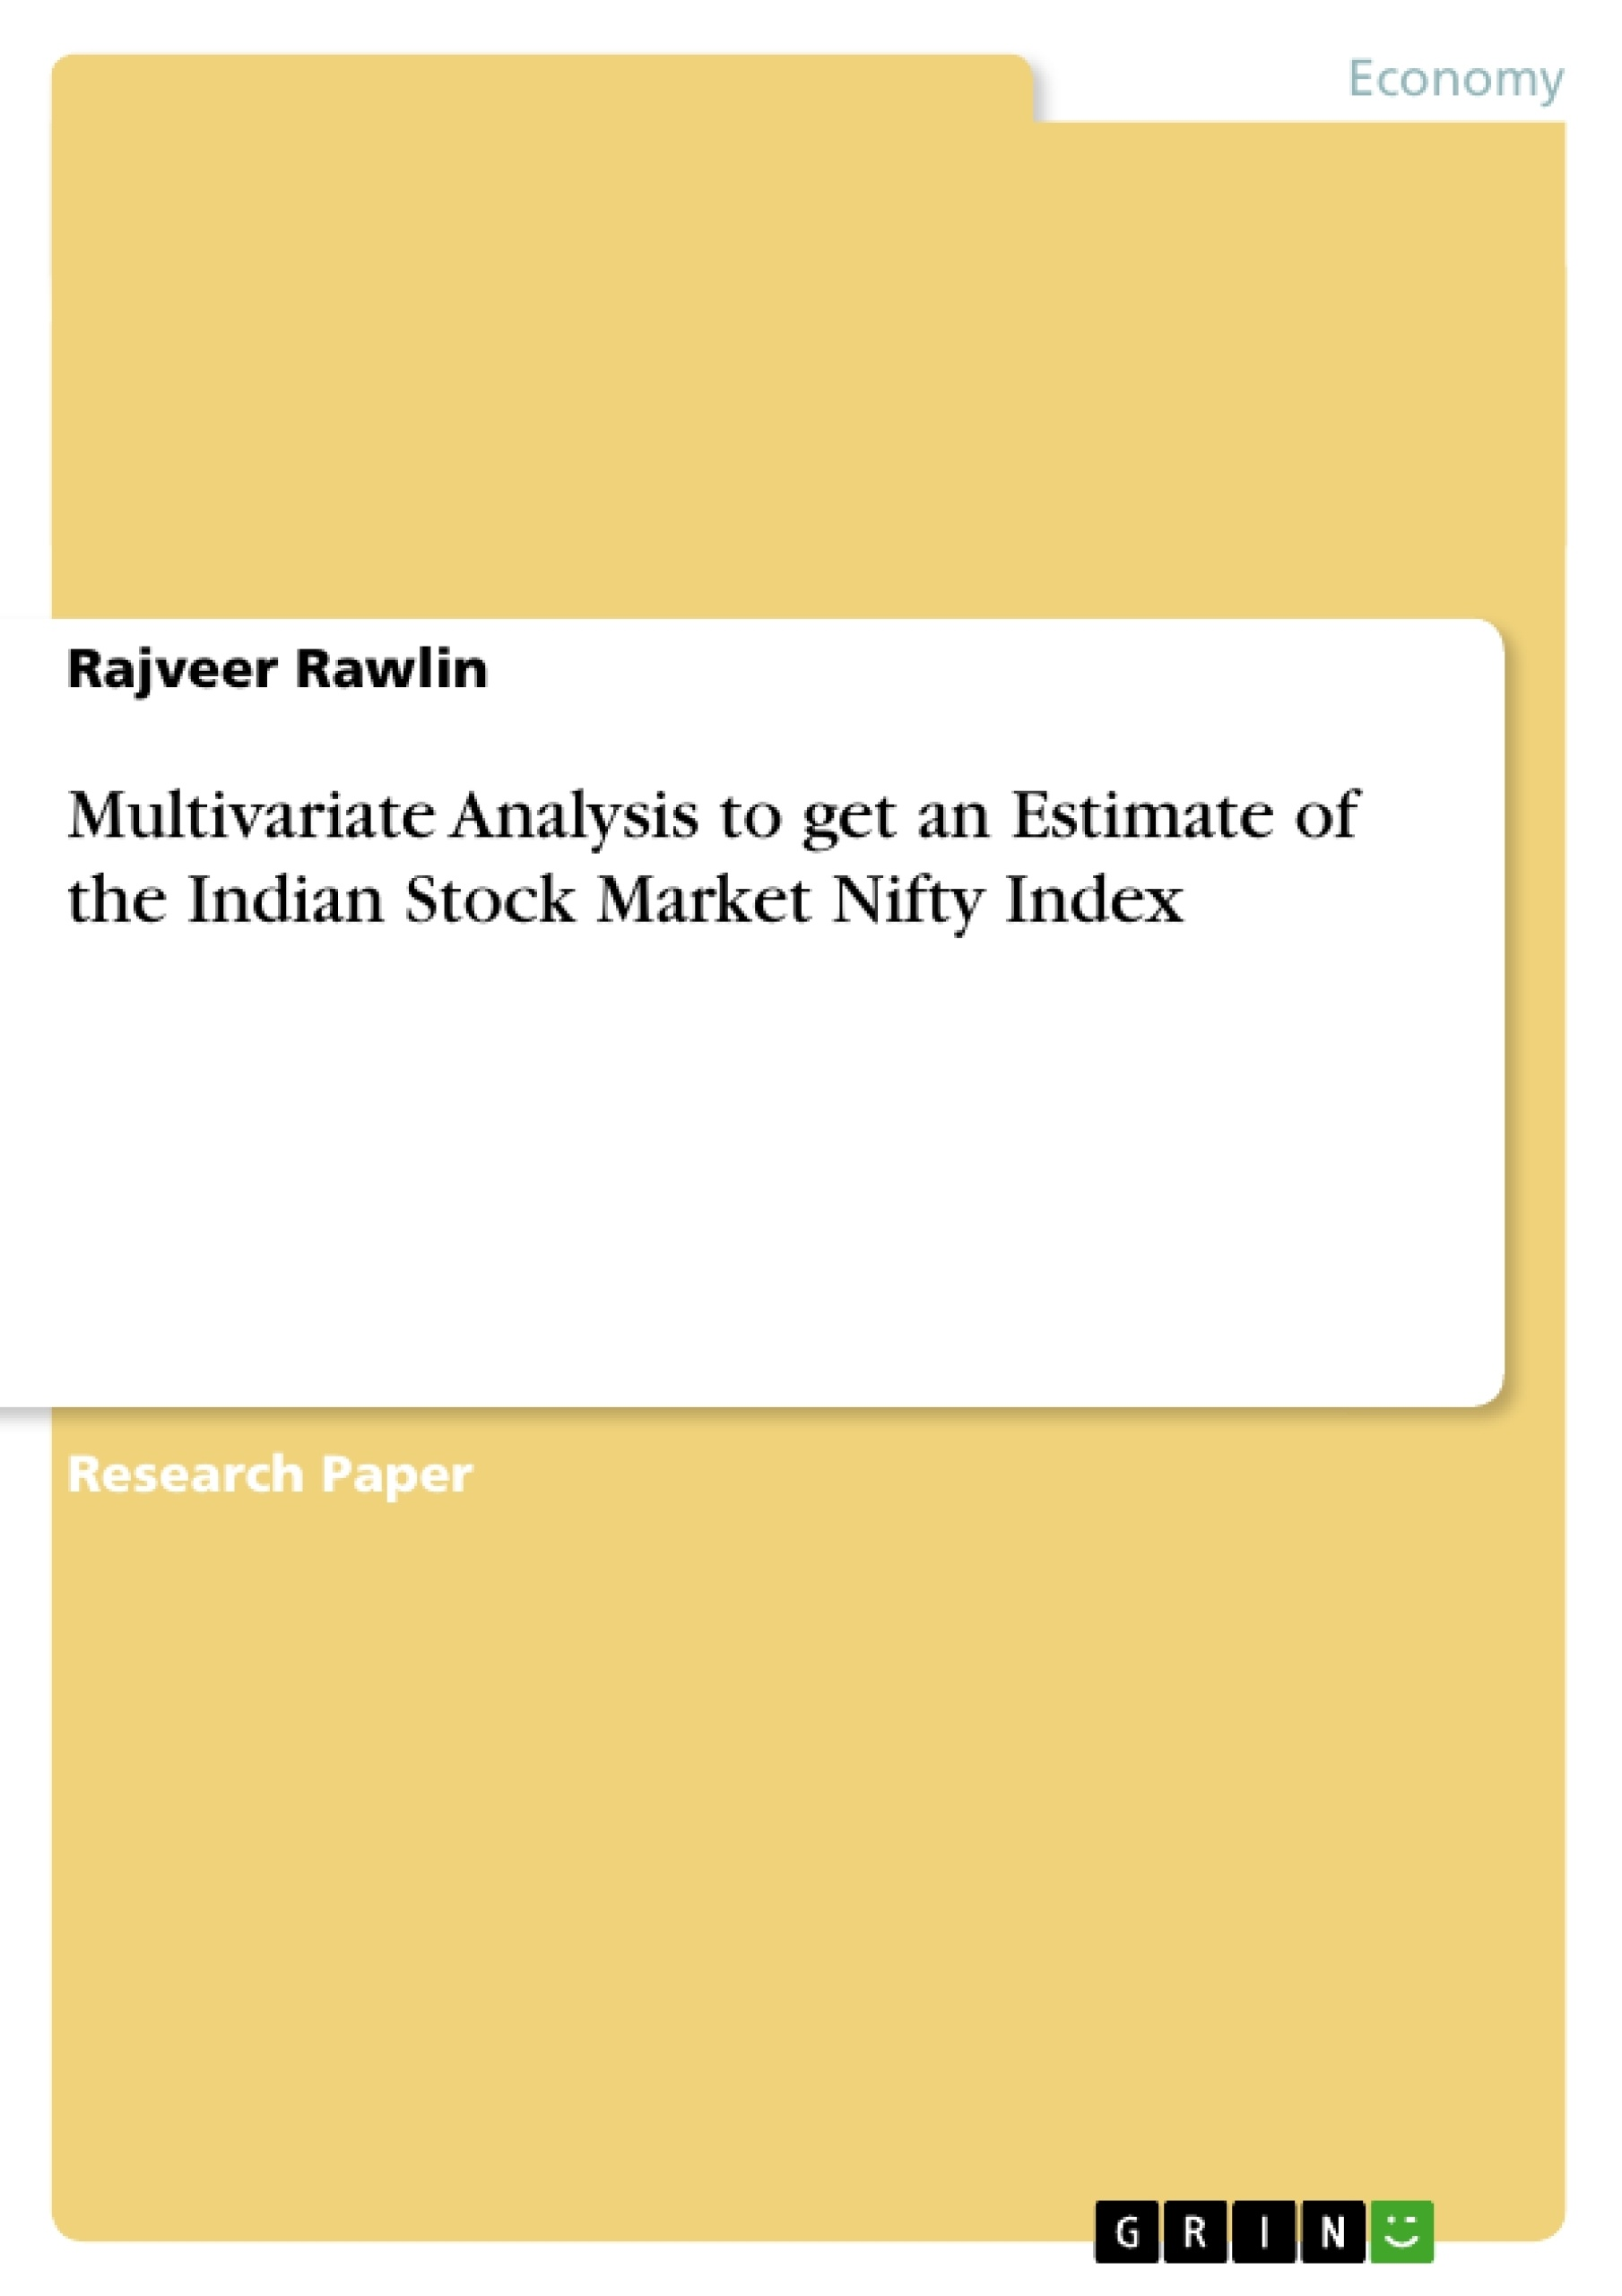 Title: Multivariate Analysis to get an Estimate of the Indian Stock Market Nifty Index